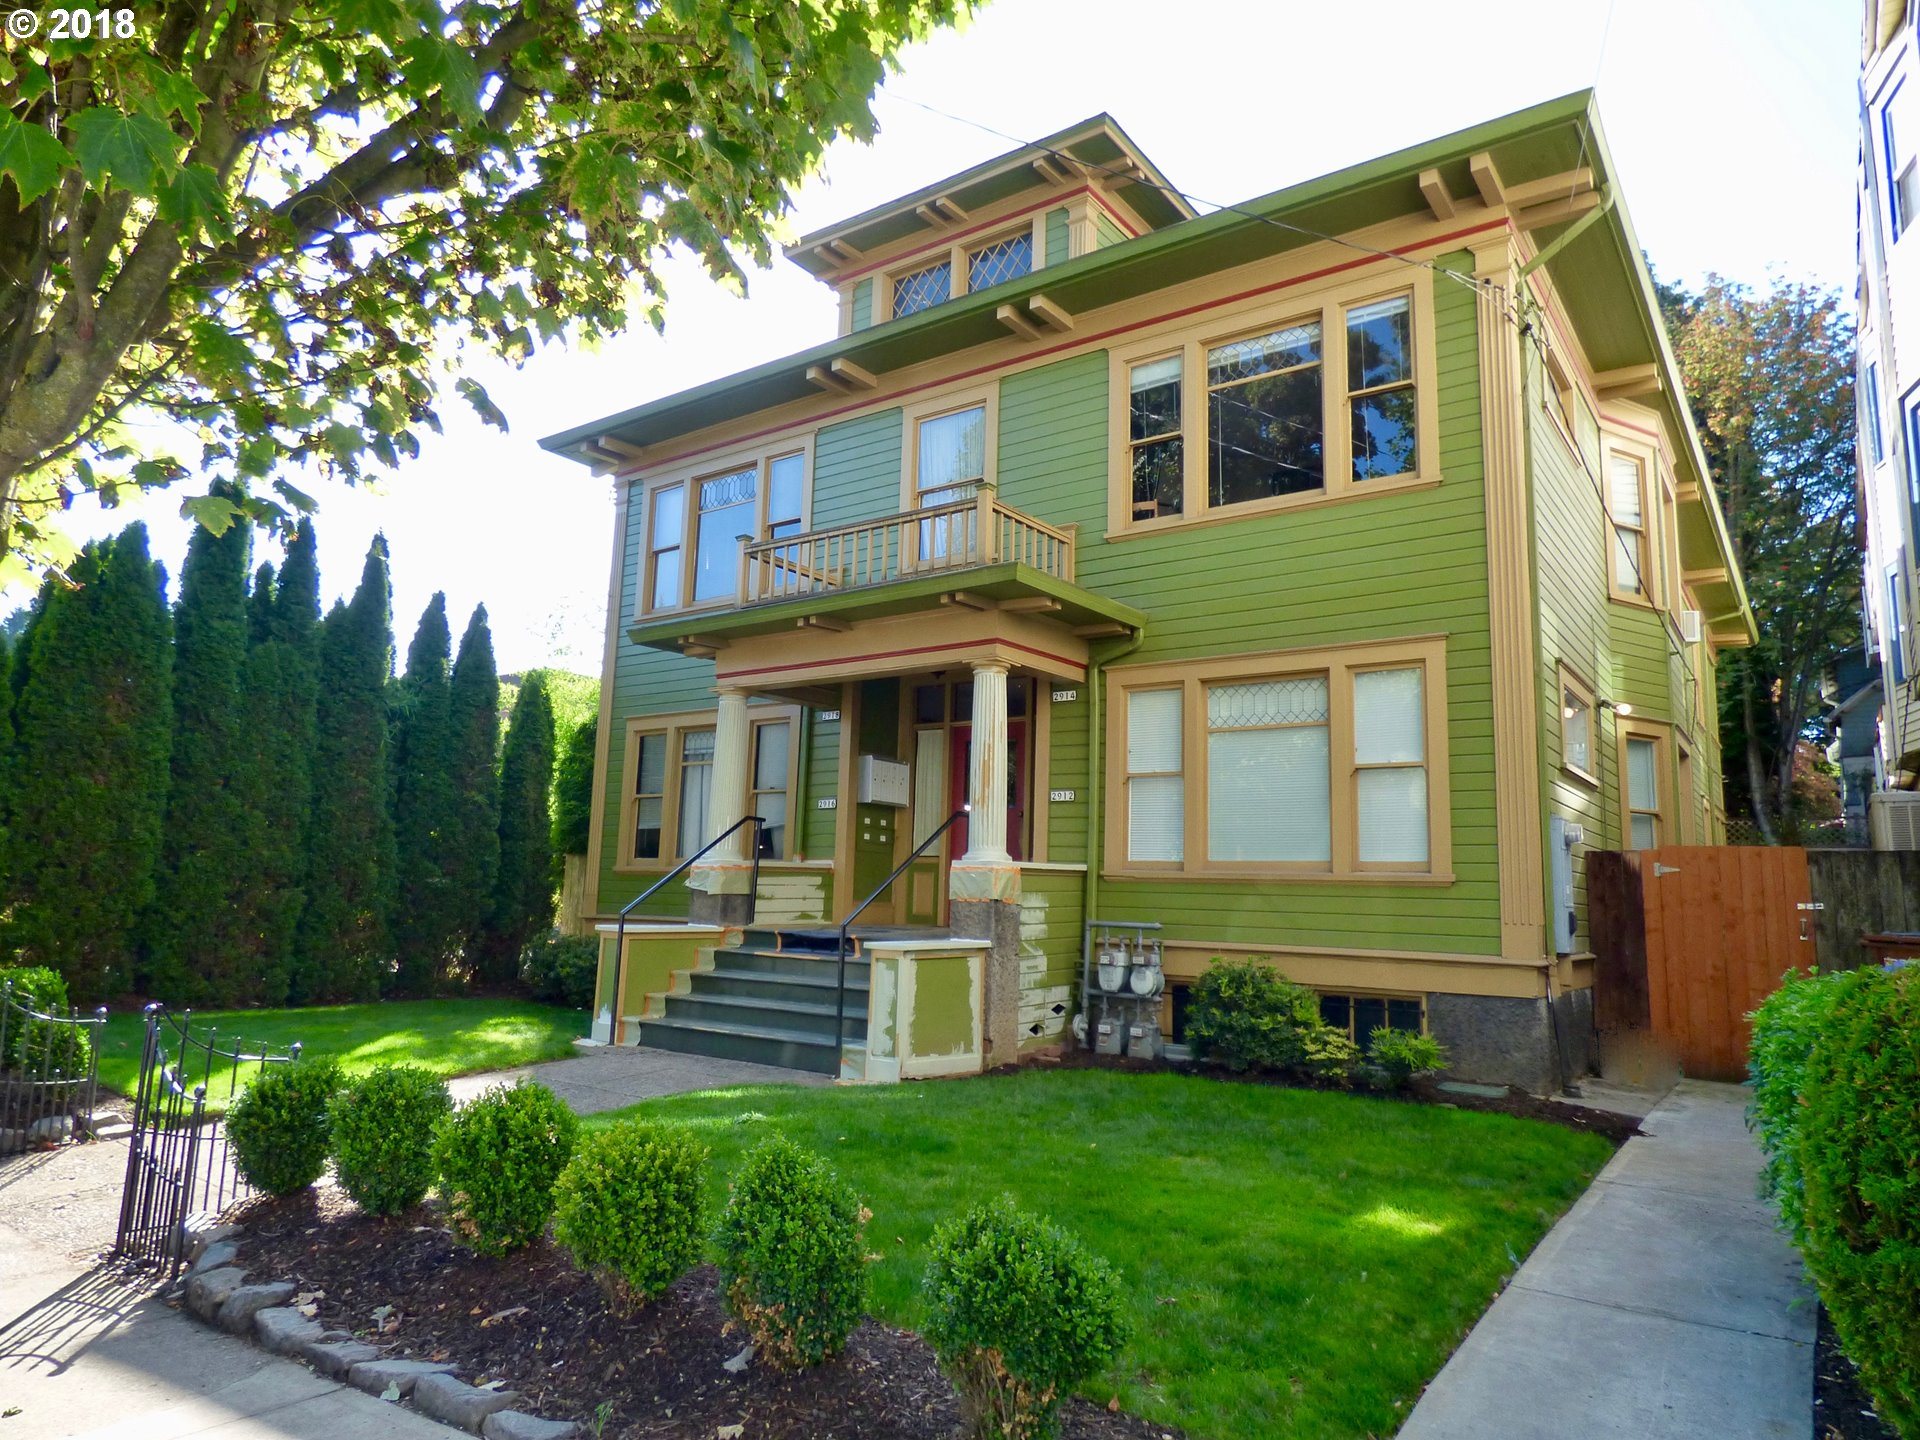 Photo for 2912 SE BELMONT ST, Portland, OR 97214 (MLS # 18108054)